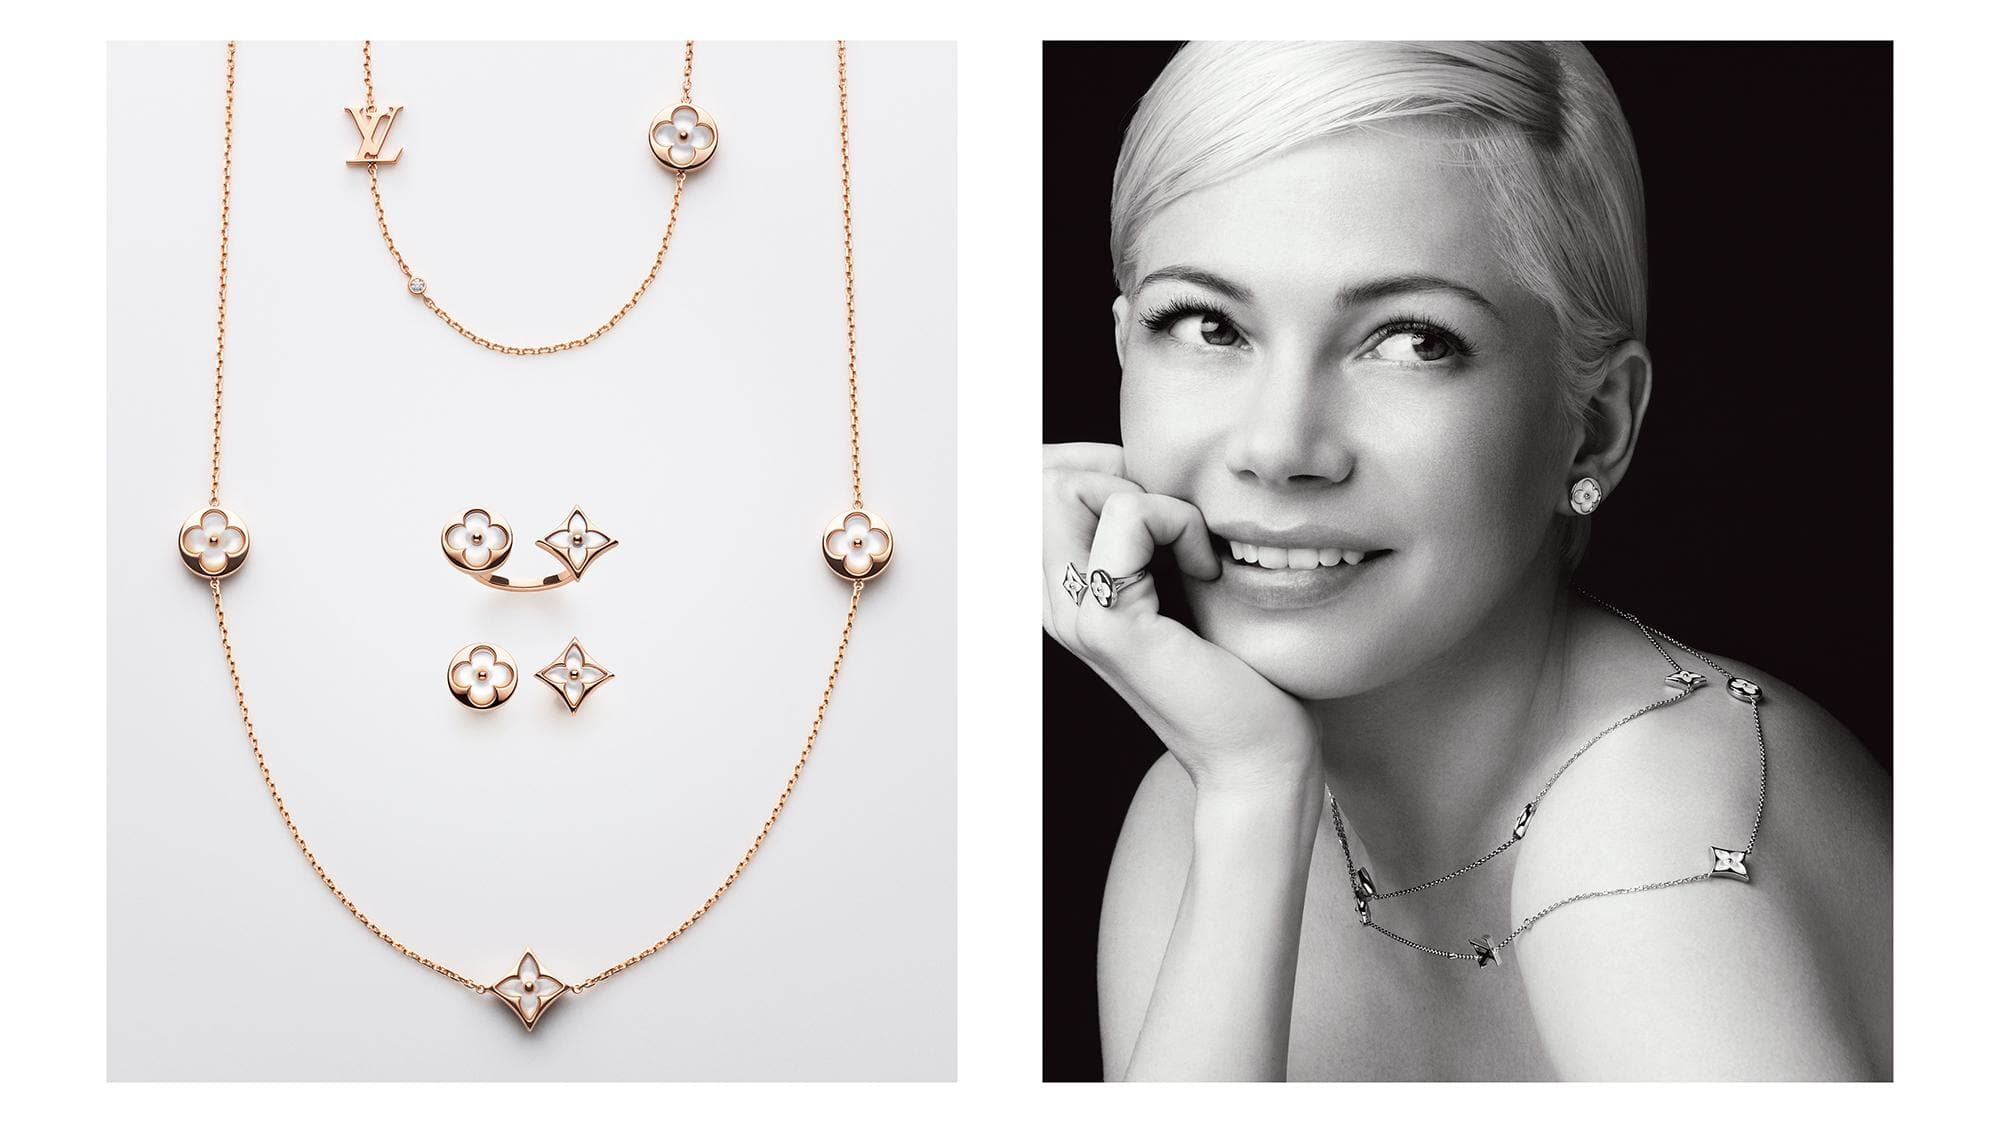 Louis Vuitton Blossom Jewelry Collection